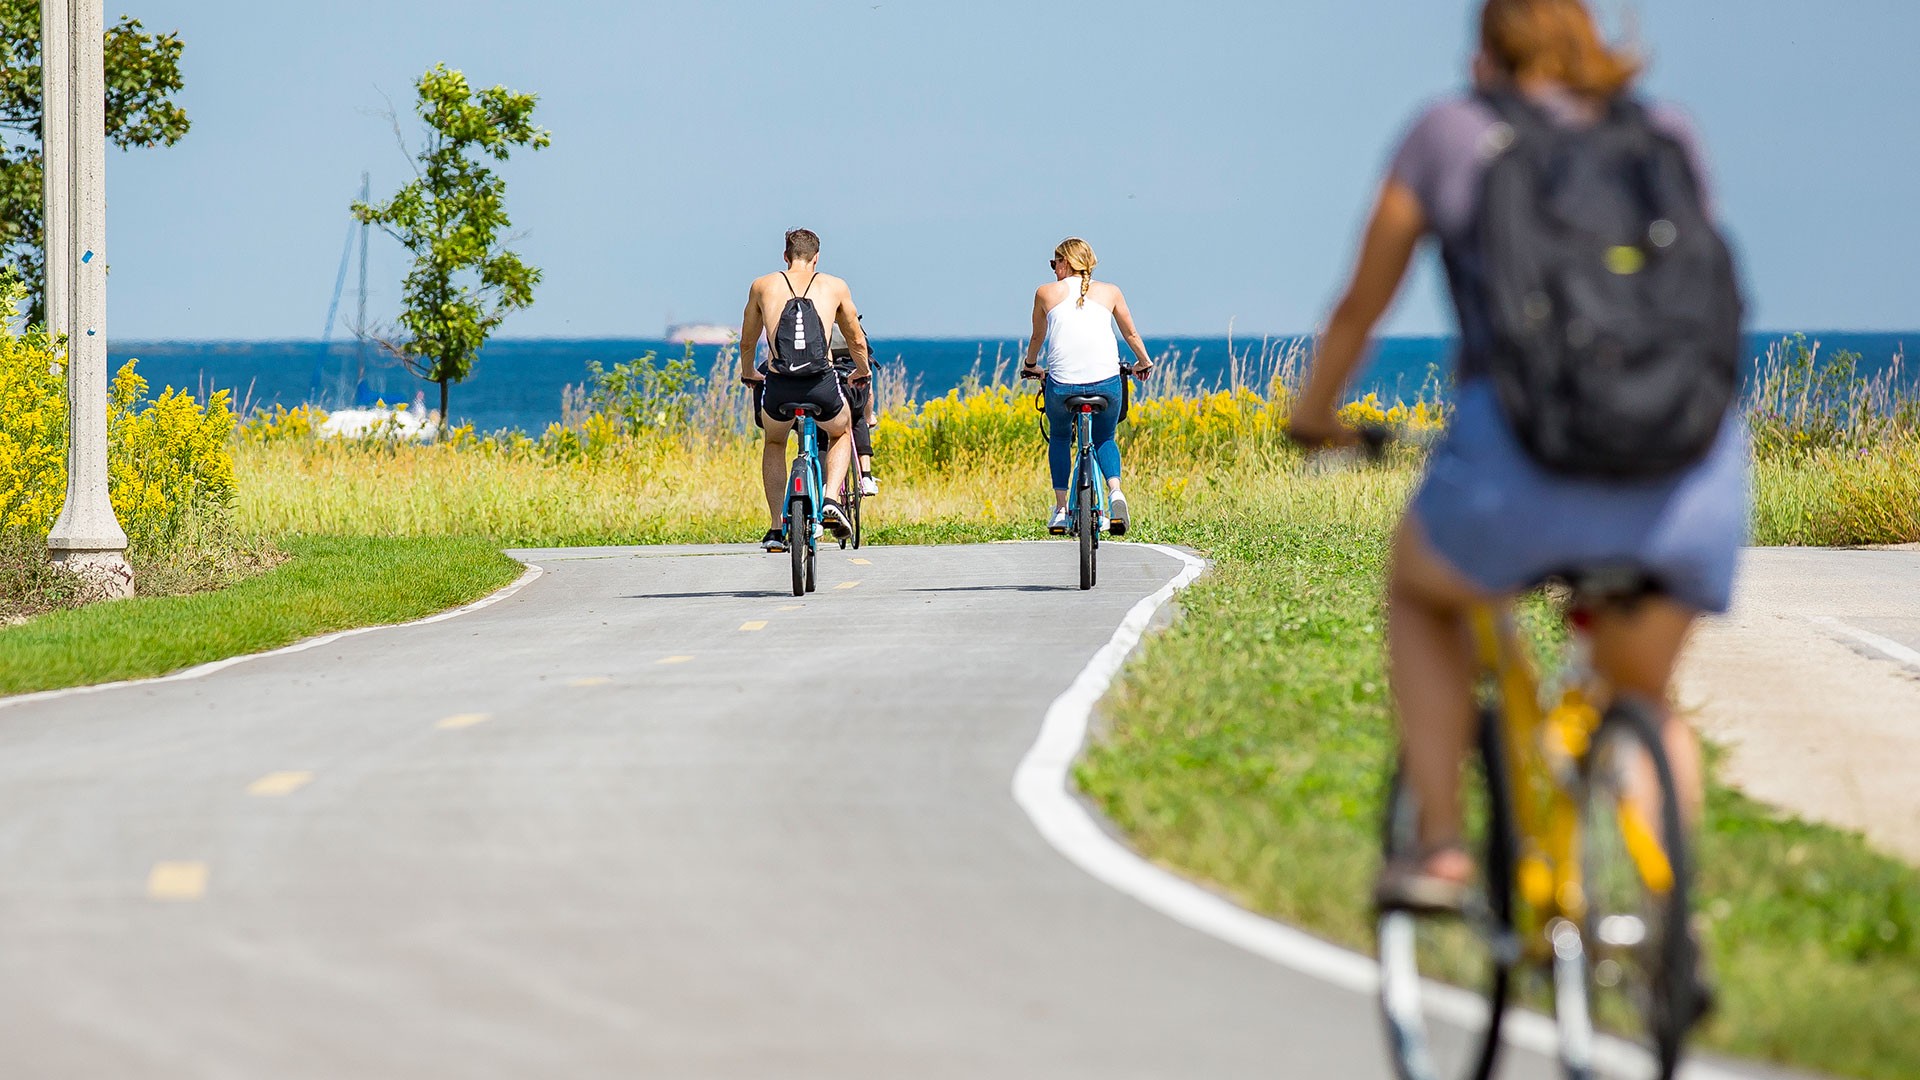 The bike path along Lake Michigan on a clear sunny day. People are riding bikes.